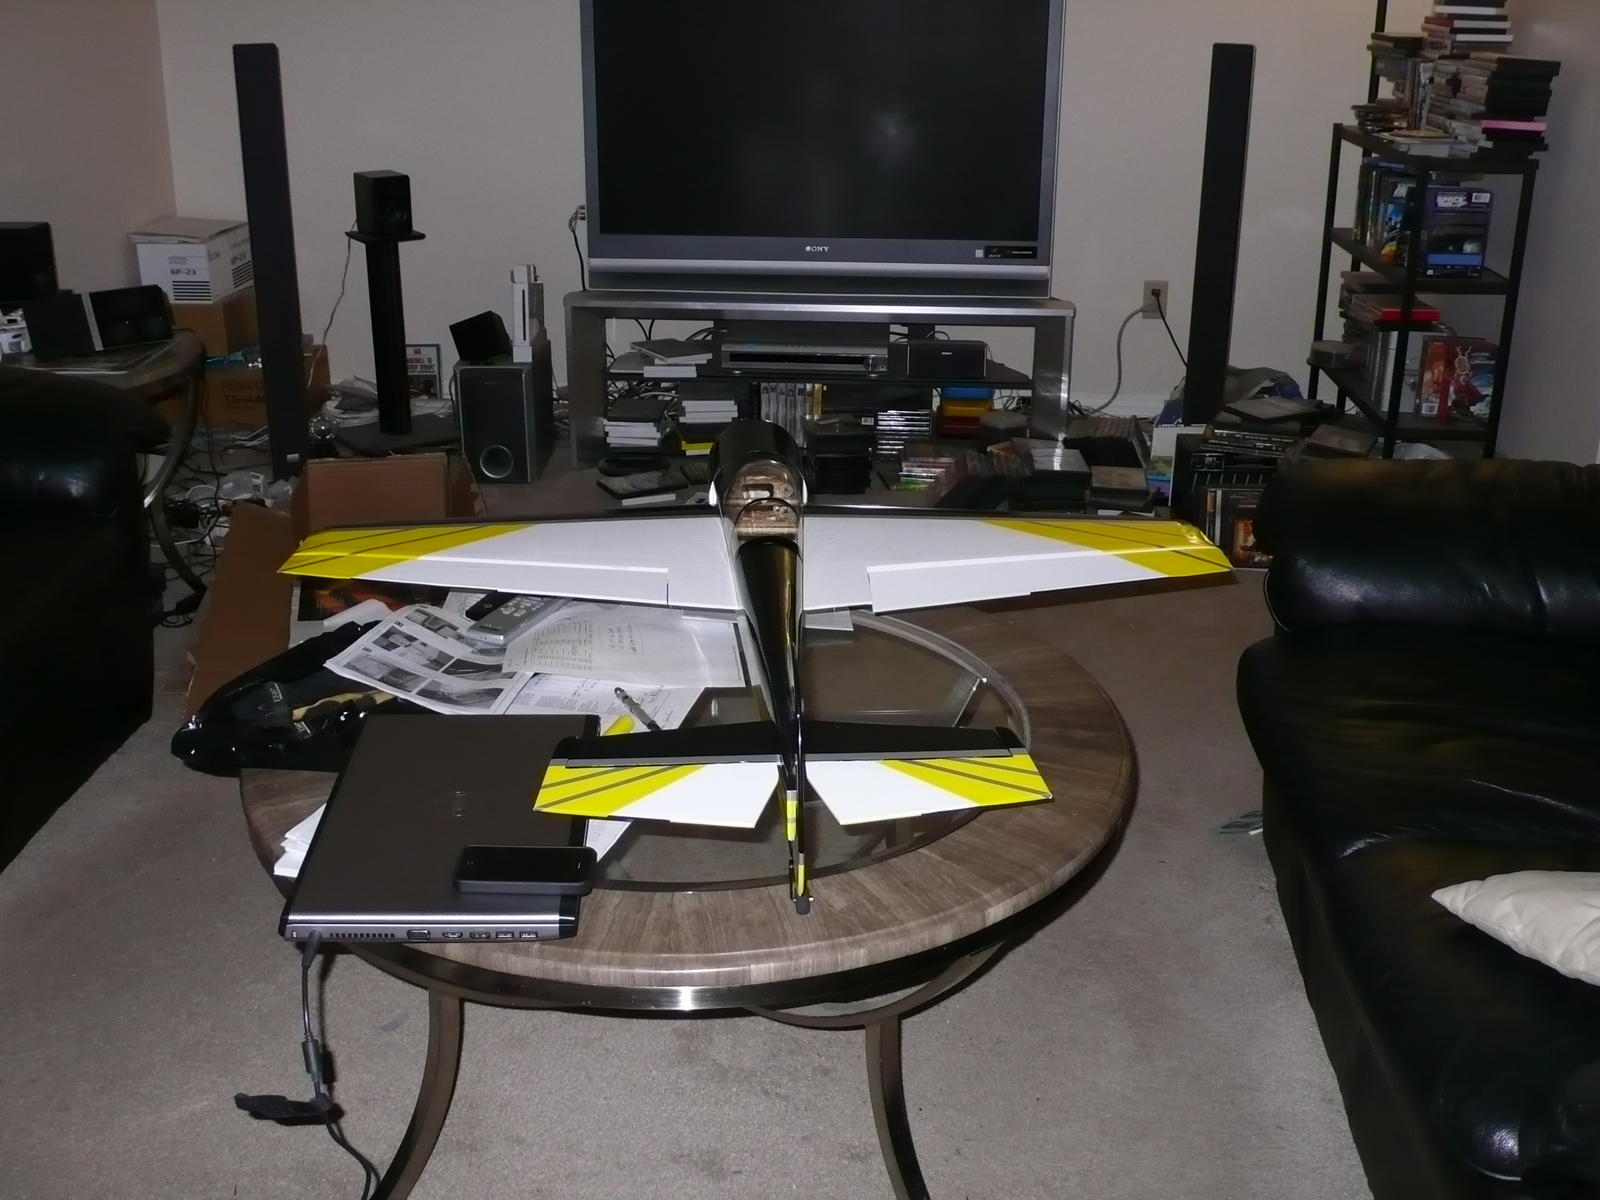 Name: P1000795.jpg Views: 199 Size: 168.5 KB Description: Starting to look like a Yak55 now!!! Getting ready for final setup in no time...